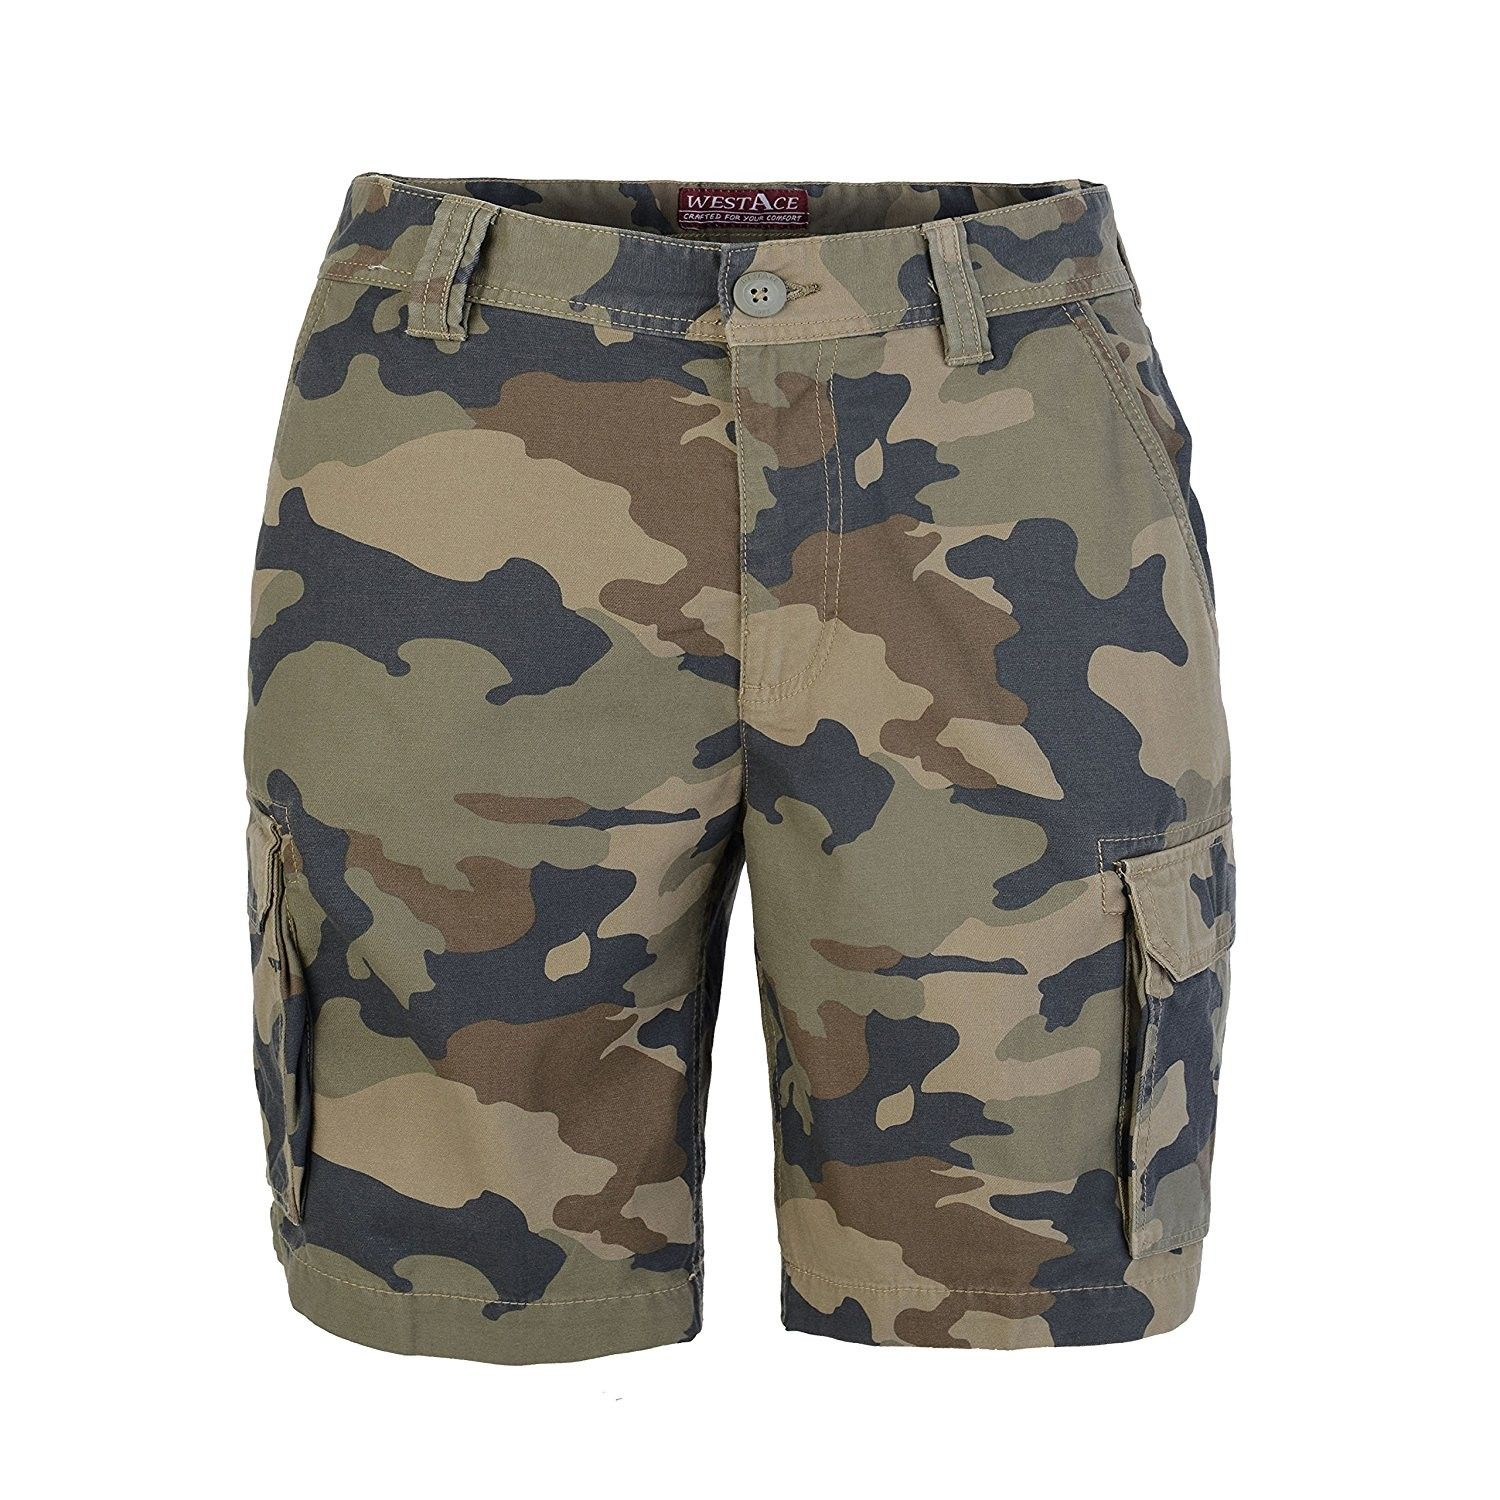 1fd4483b2f Men's Clothing, Shorts, Mens Army Cargo Combat Shorts Casual Work Cotton  Chino Camo Half Pant - Khaki Camo - CR180ACA0GI #men #fashion #clothing  #style ...